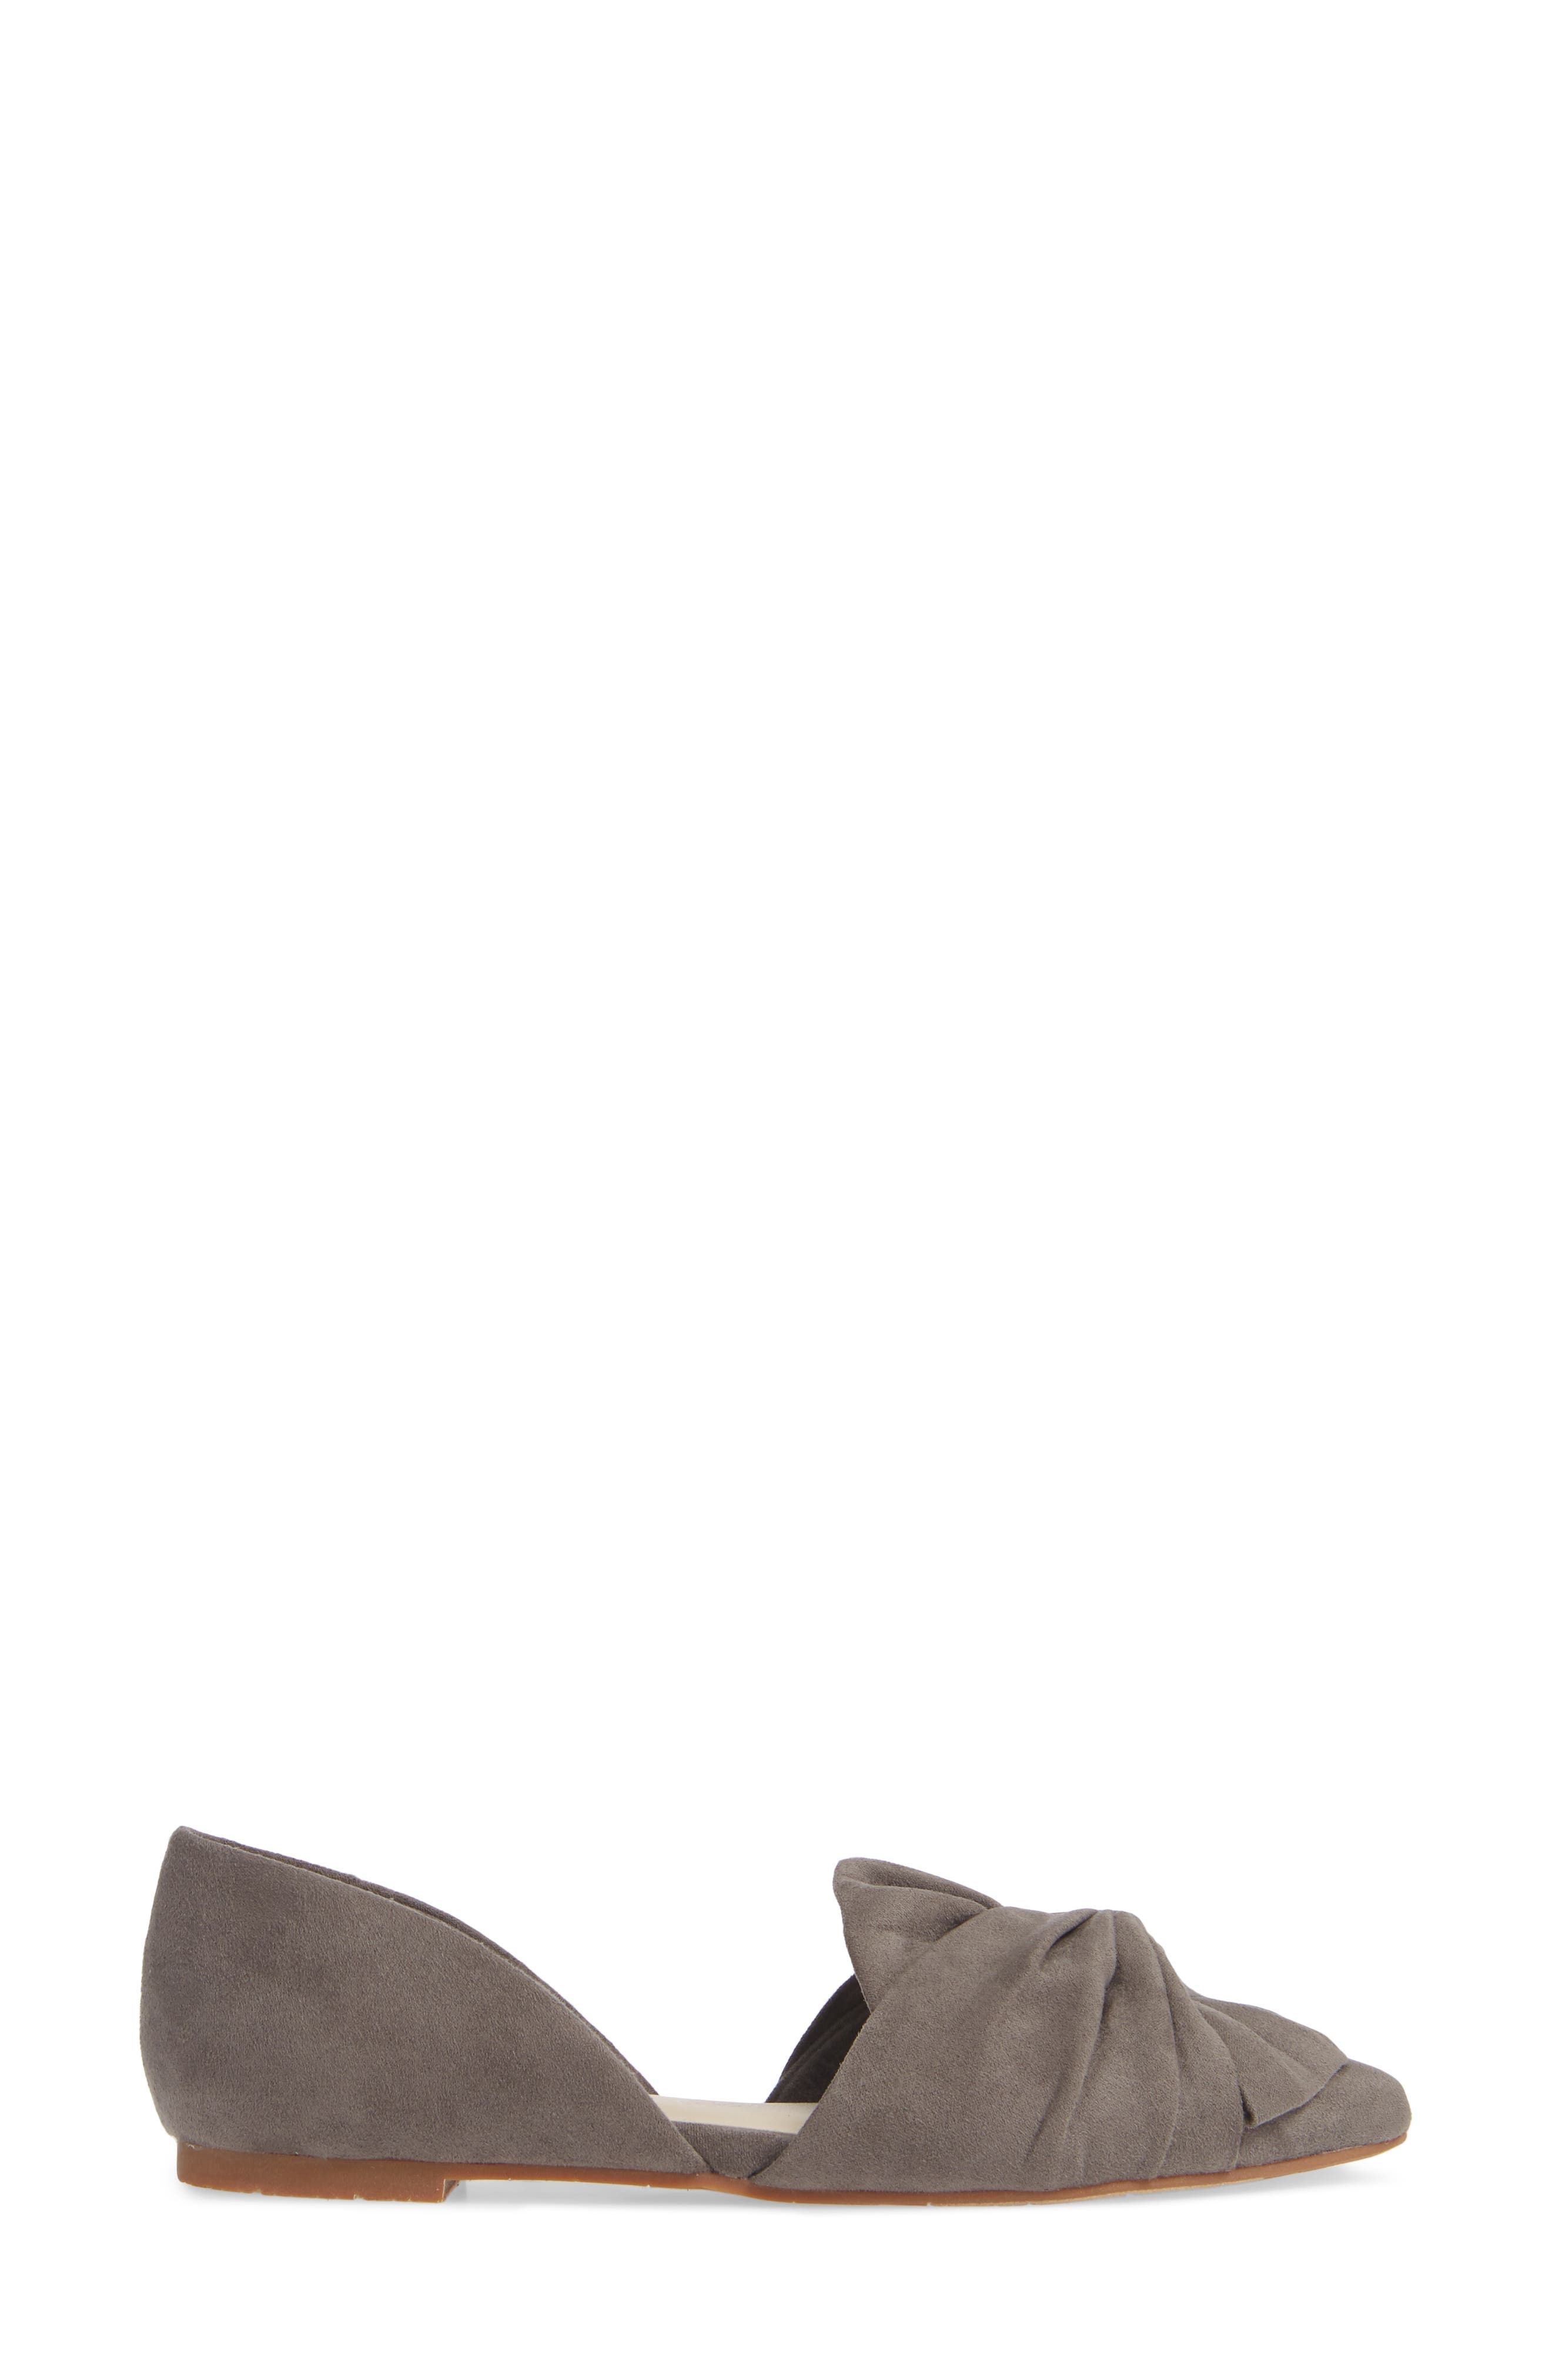 Snow Cone d'Orsay Flat,                             Alternate thumbnail 3, color,                             GREY SUEDE